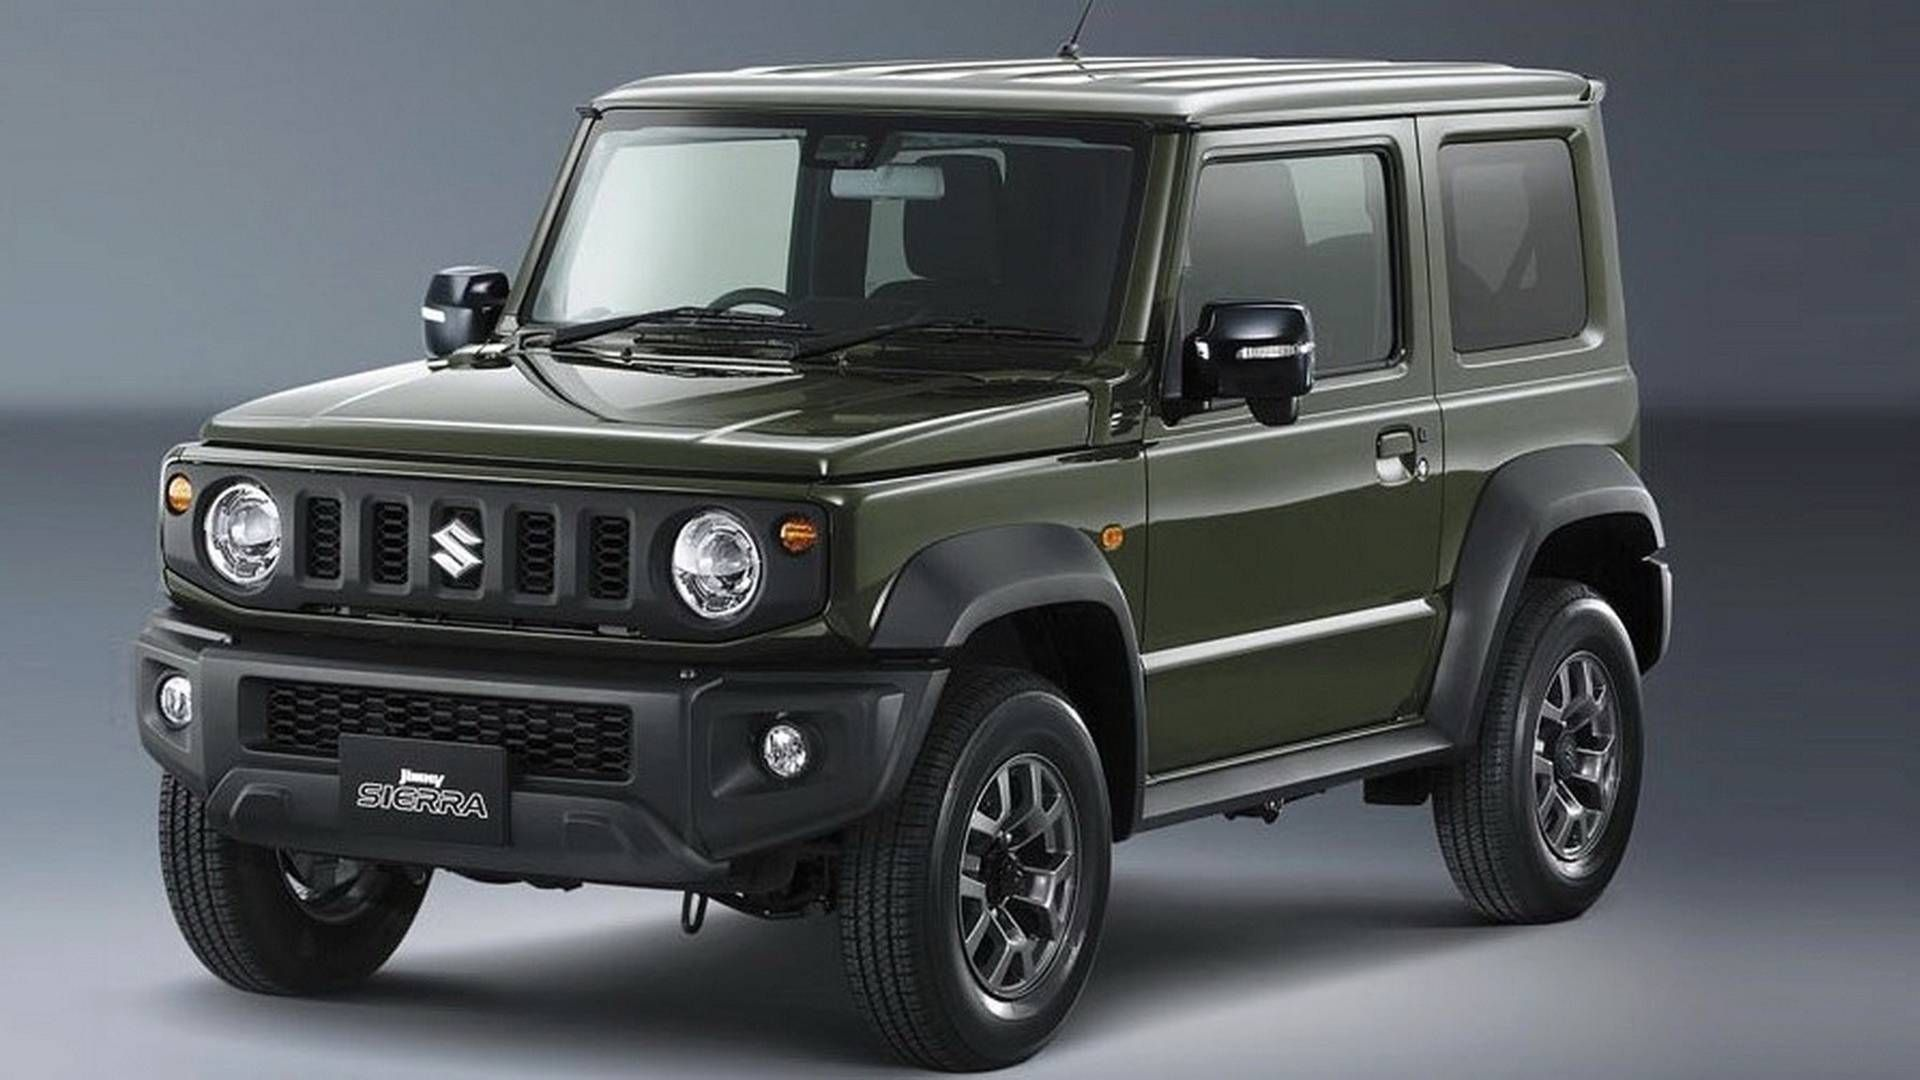 2019 Suzuki Jimny Official Photos Reveal Cute And Boxy Off Roader New Suzuki Jimny Suzuki Jimny Jimny 4x4